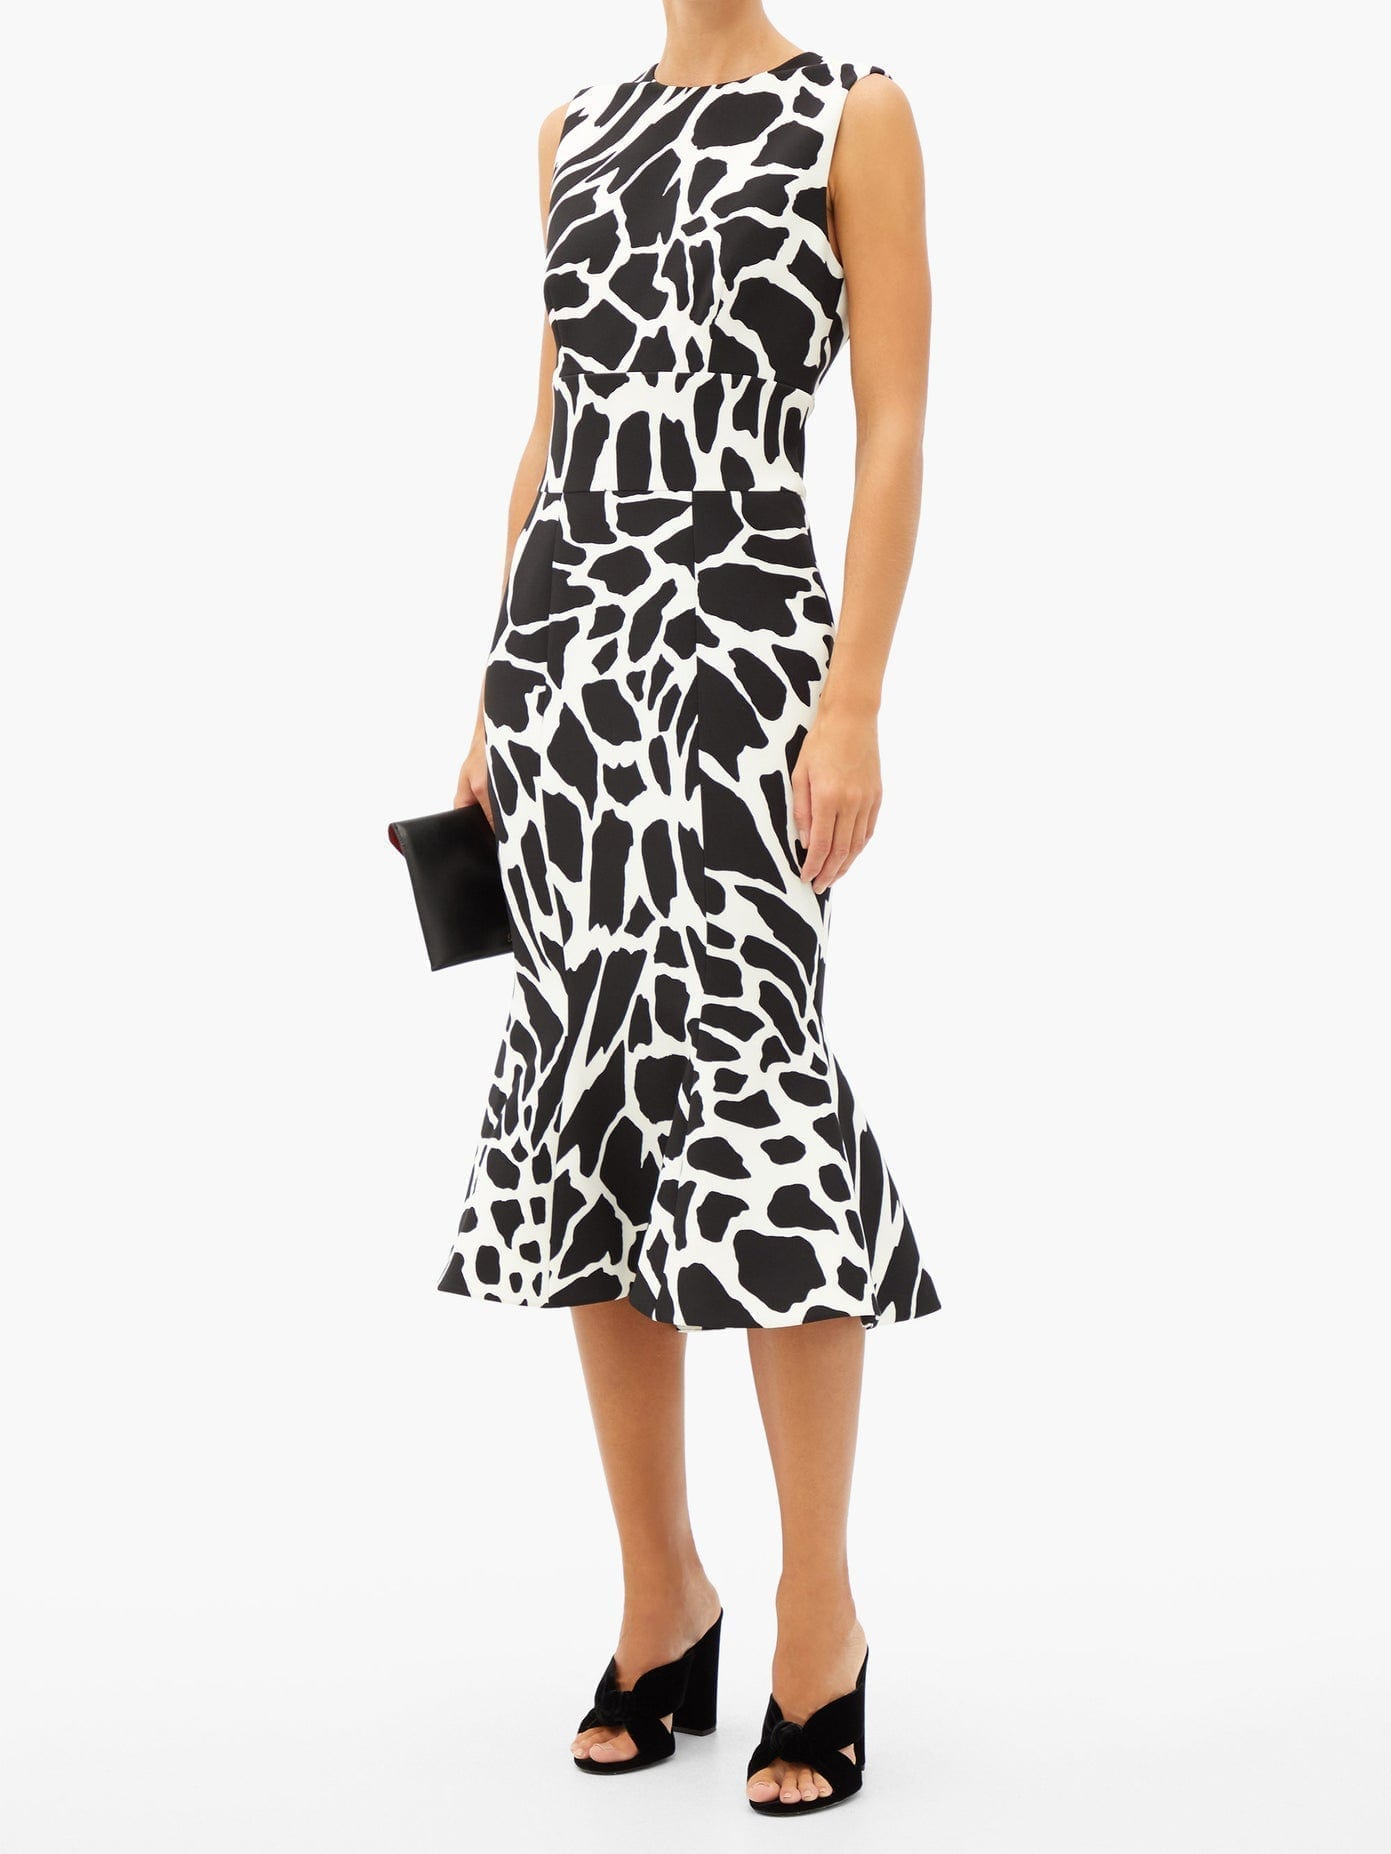 ALEXANDRE VAUTHIER Flared Giraffe-print Crepe Dress